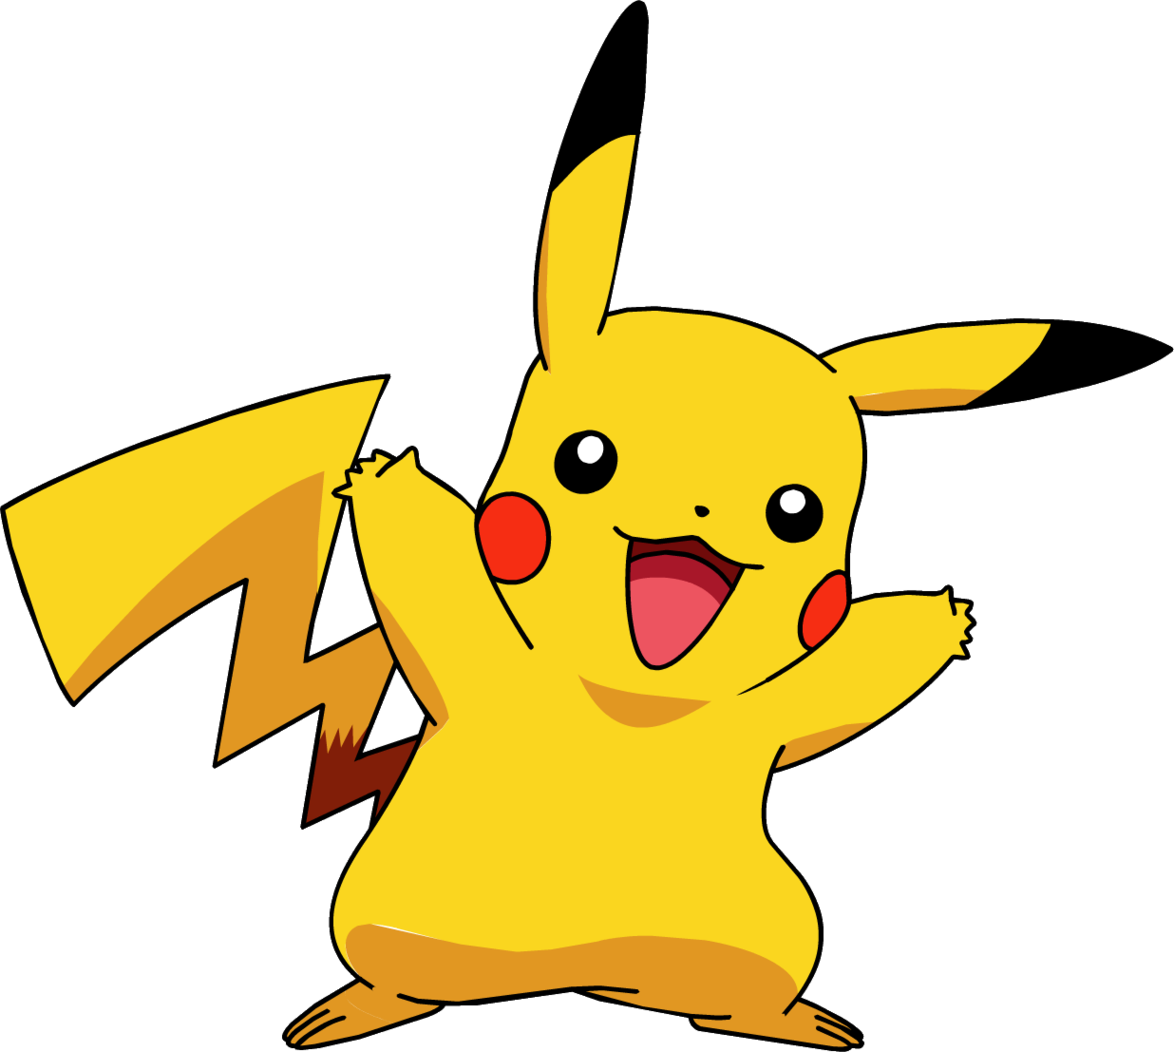 Pokeball clipart cute pikachu.  collection of free